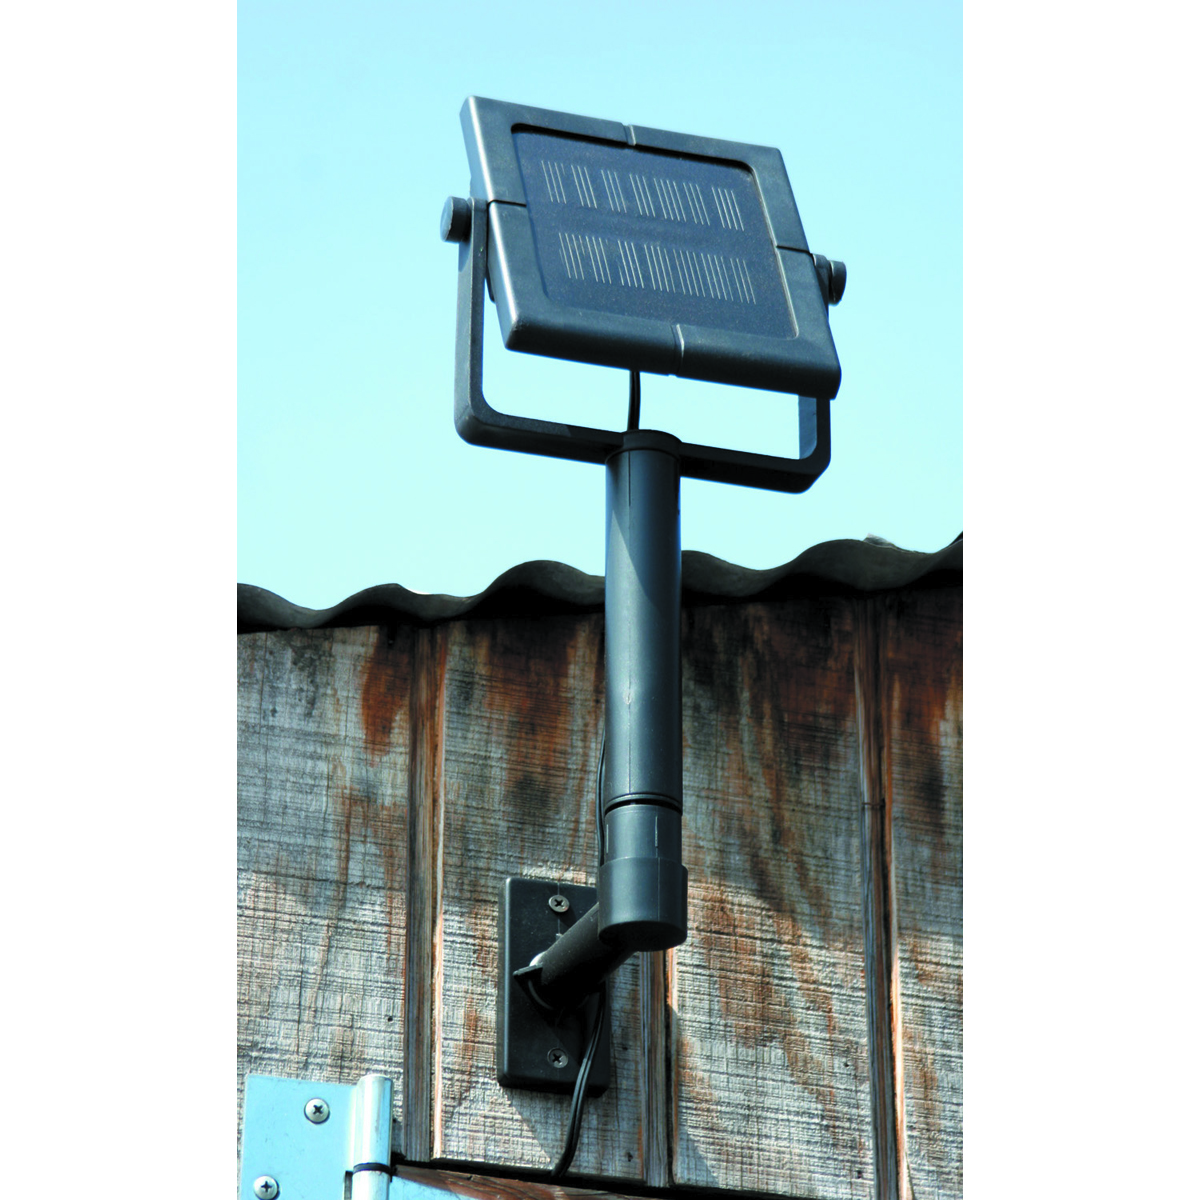 Harbor freight portable floodlights : Ham storage shed harbor freight